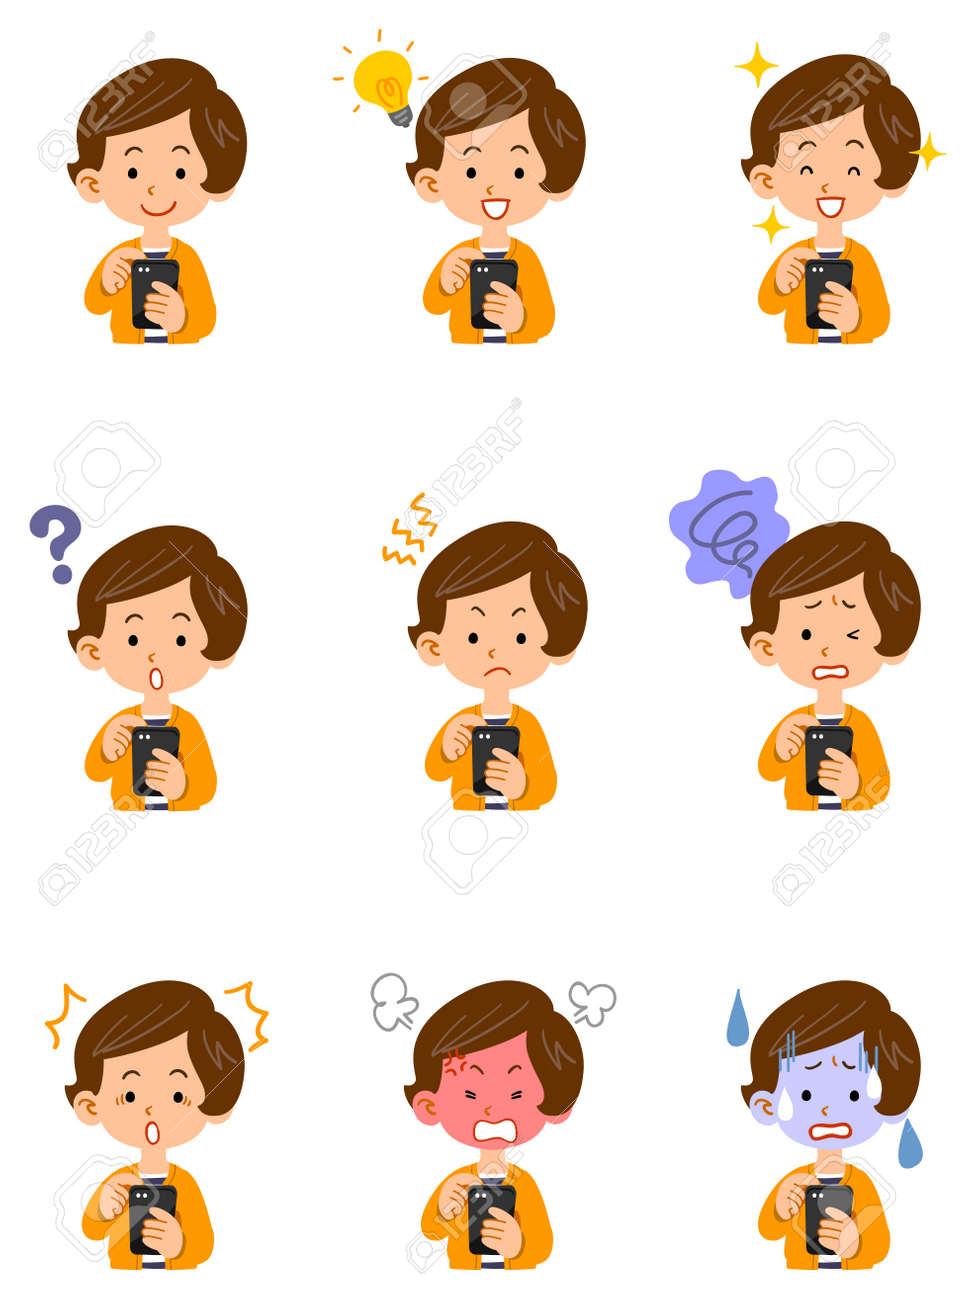 Illustration set of facial expressions of women operating smartphones - 169328238